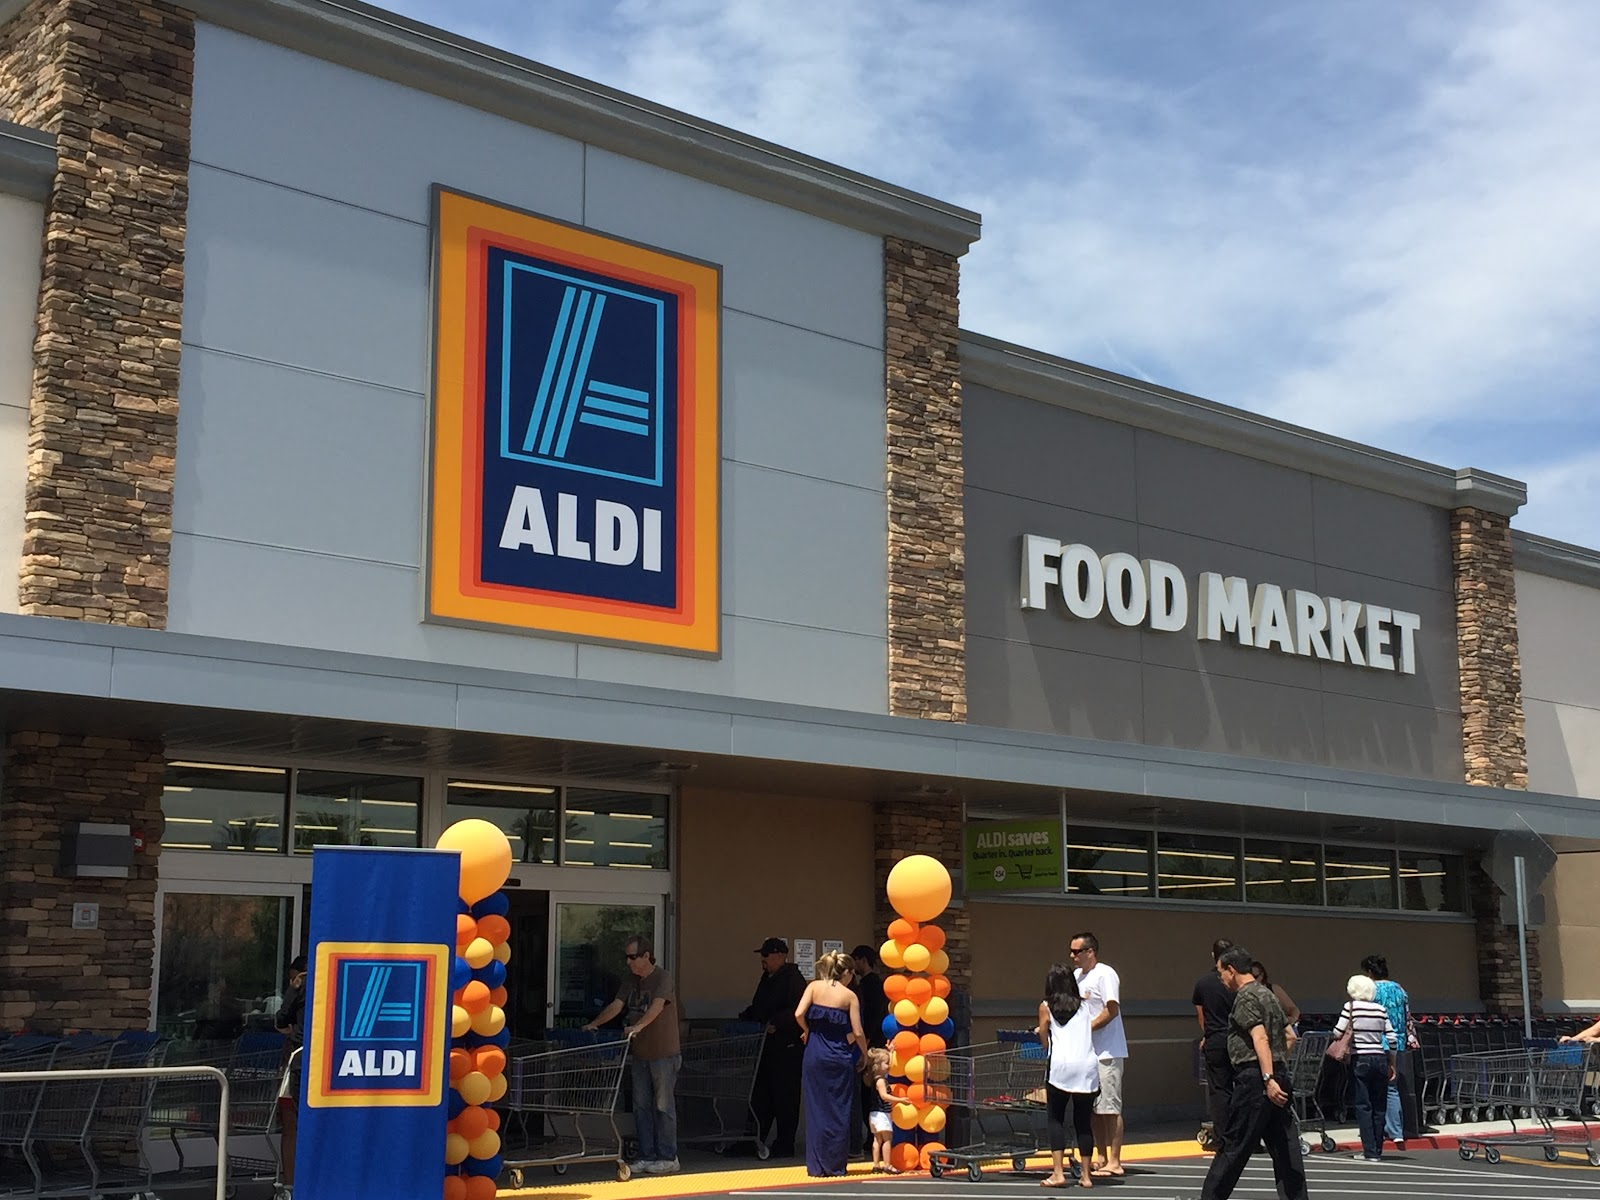 The City of Covina welcomes a New ALDI Grocery Store in Covina | City of  Covina California